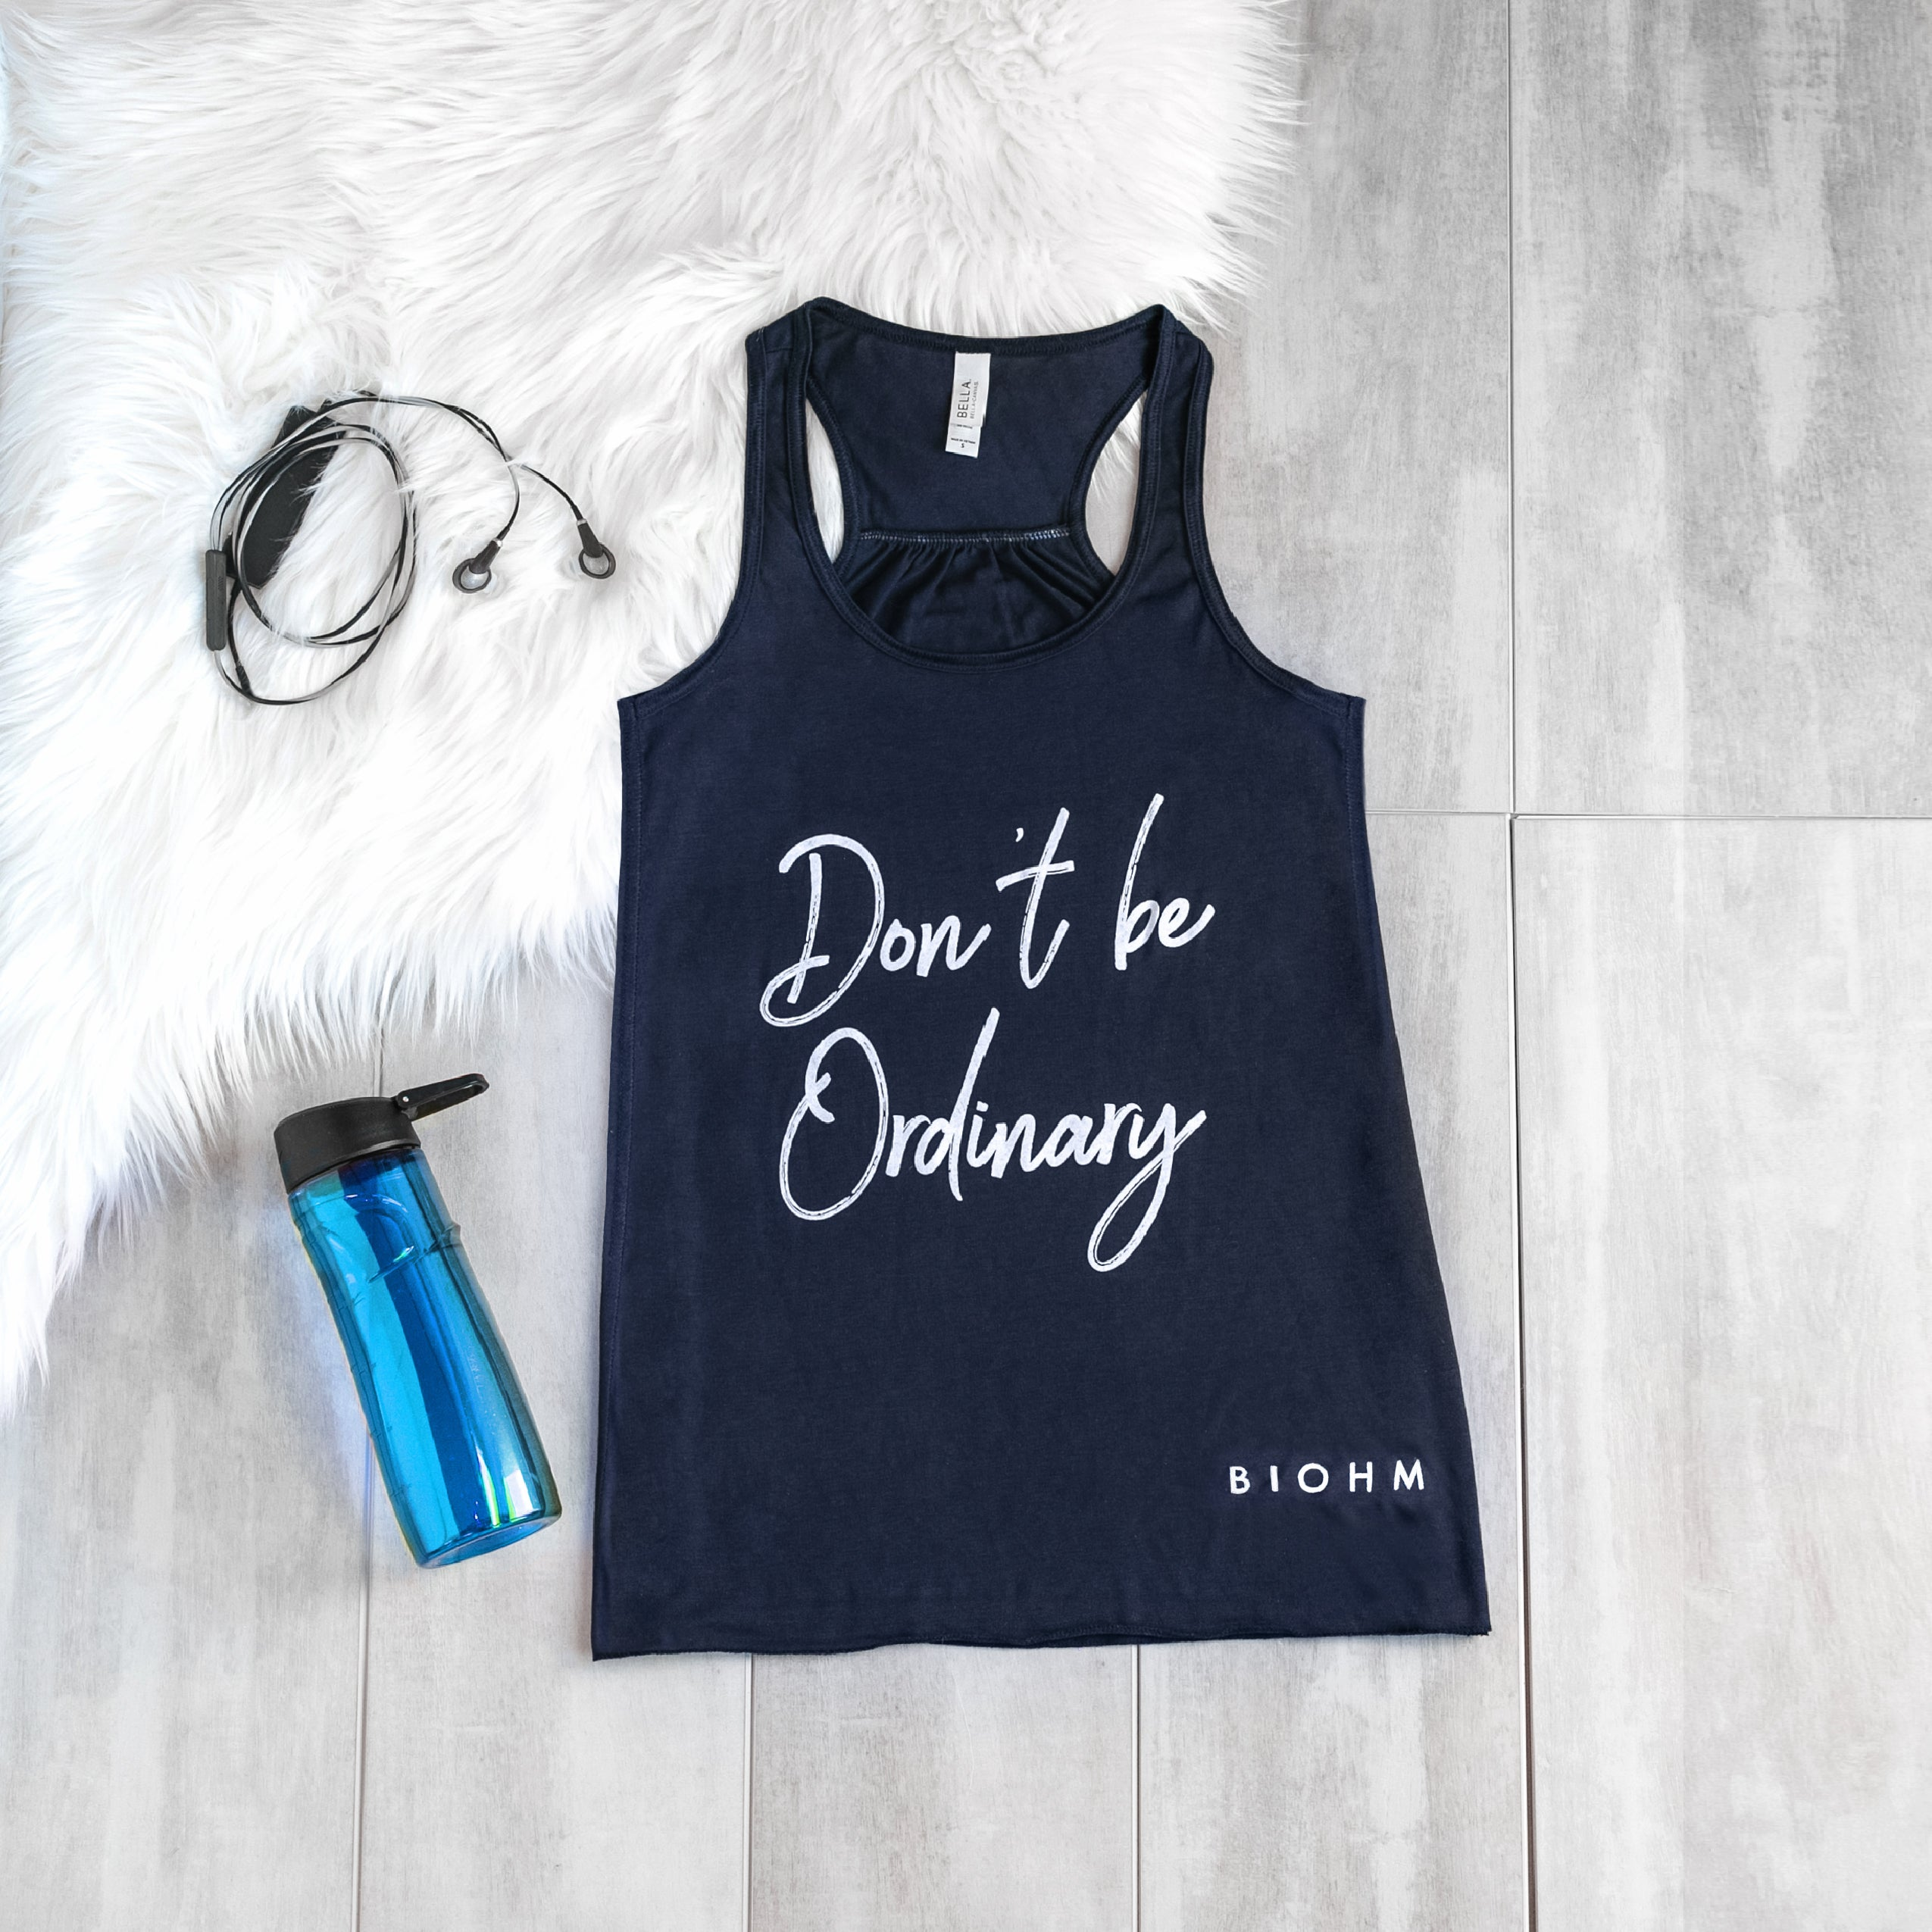 BIOHM Don't Be Ordinary Tank